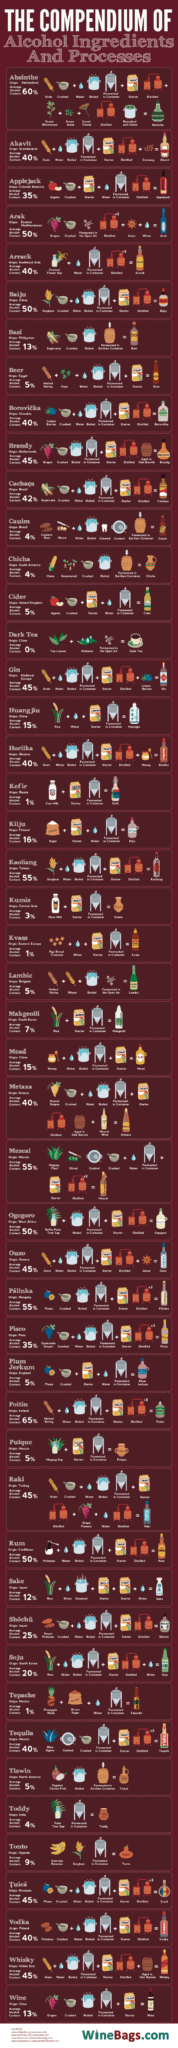 AlcoholingredientsGraphic